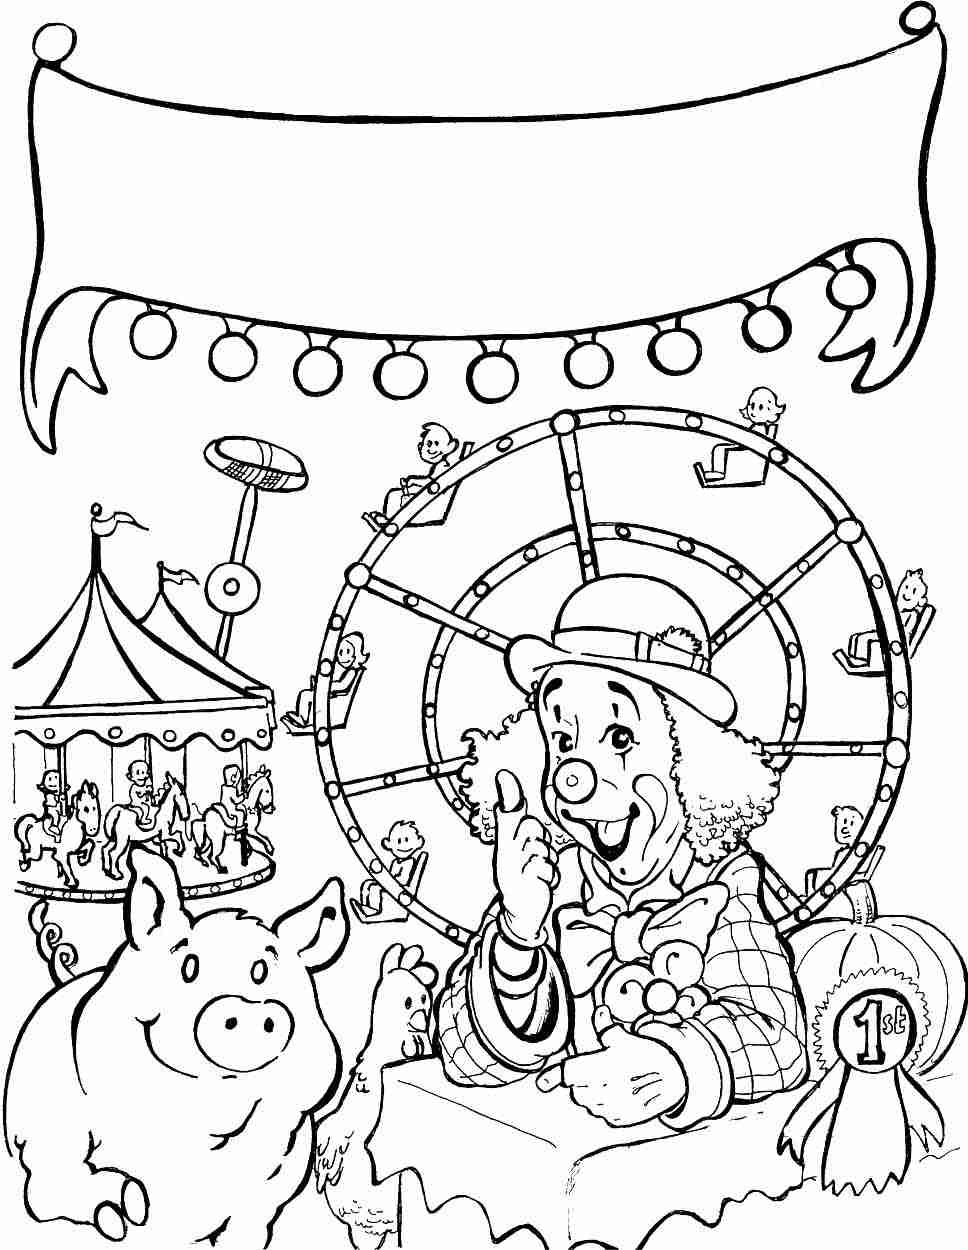 968x1250 Charlotte Web Coloring Pages Olegratiy Fair Coloring Pages